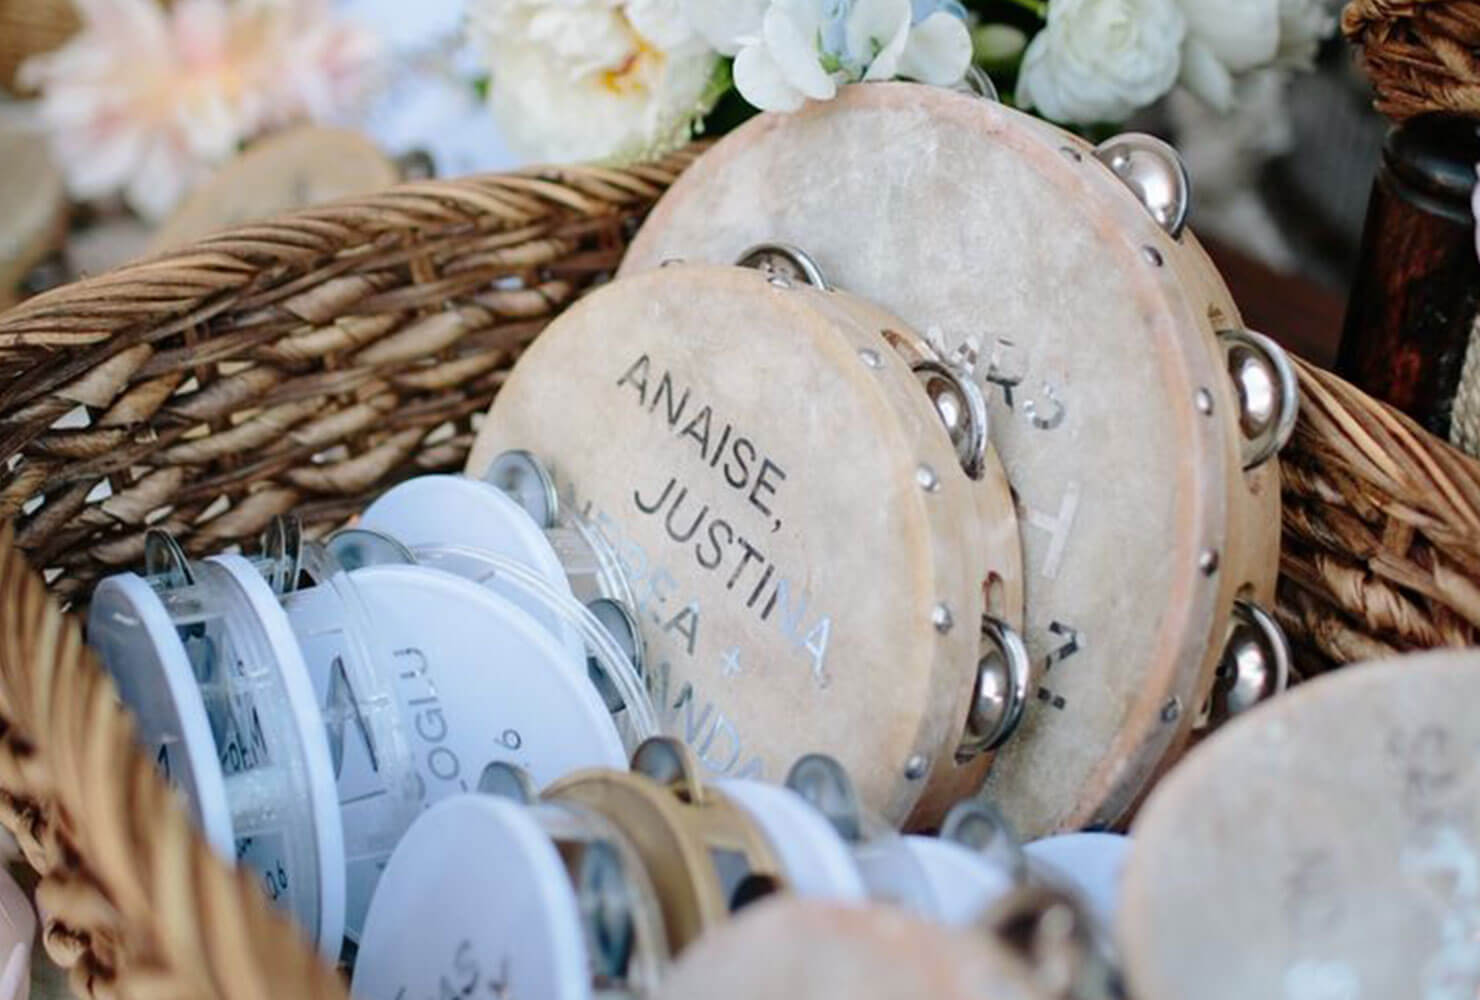 personalized tambourines in a basket.